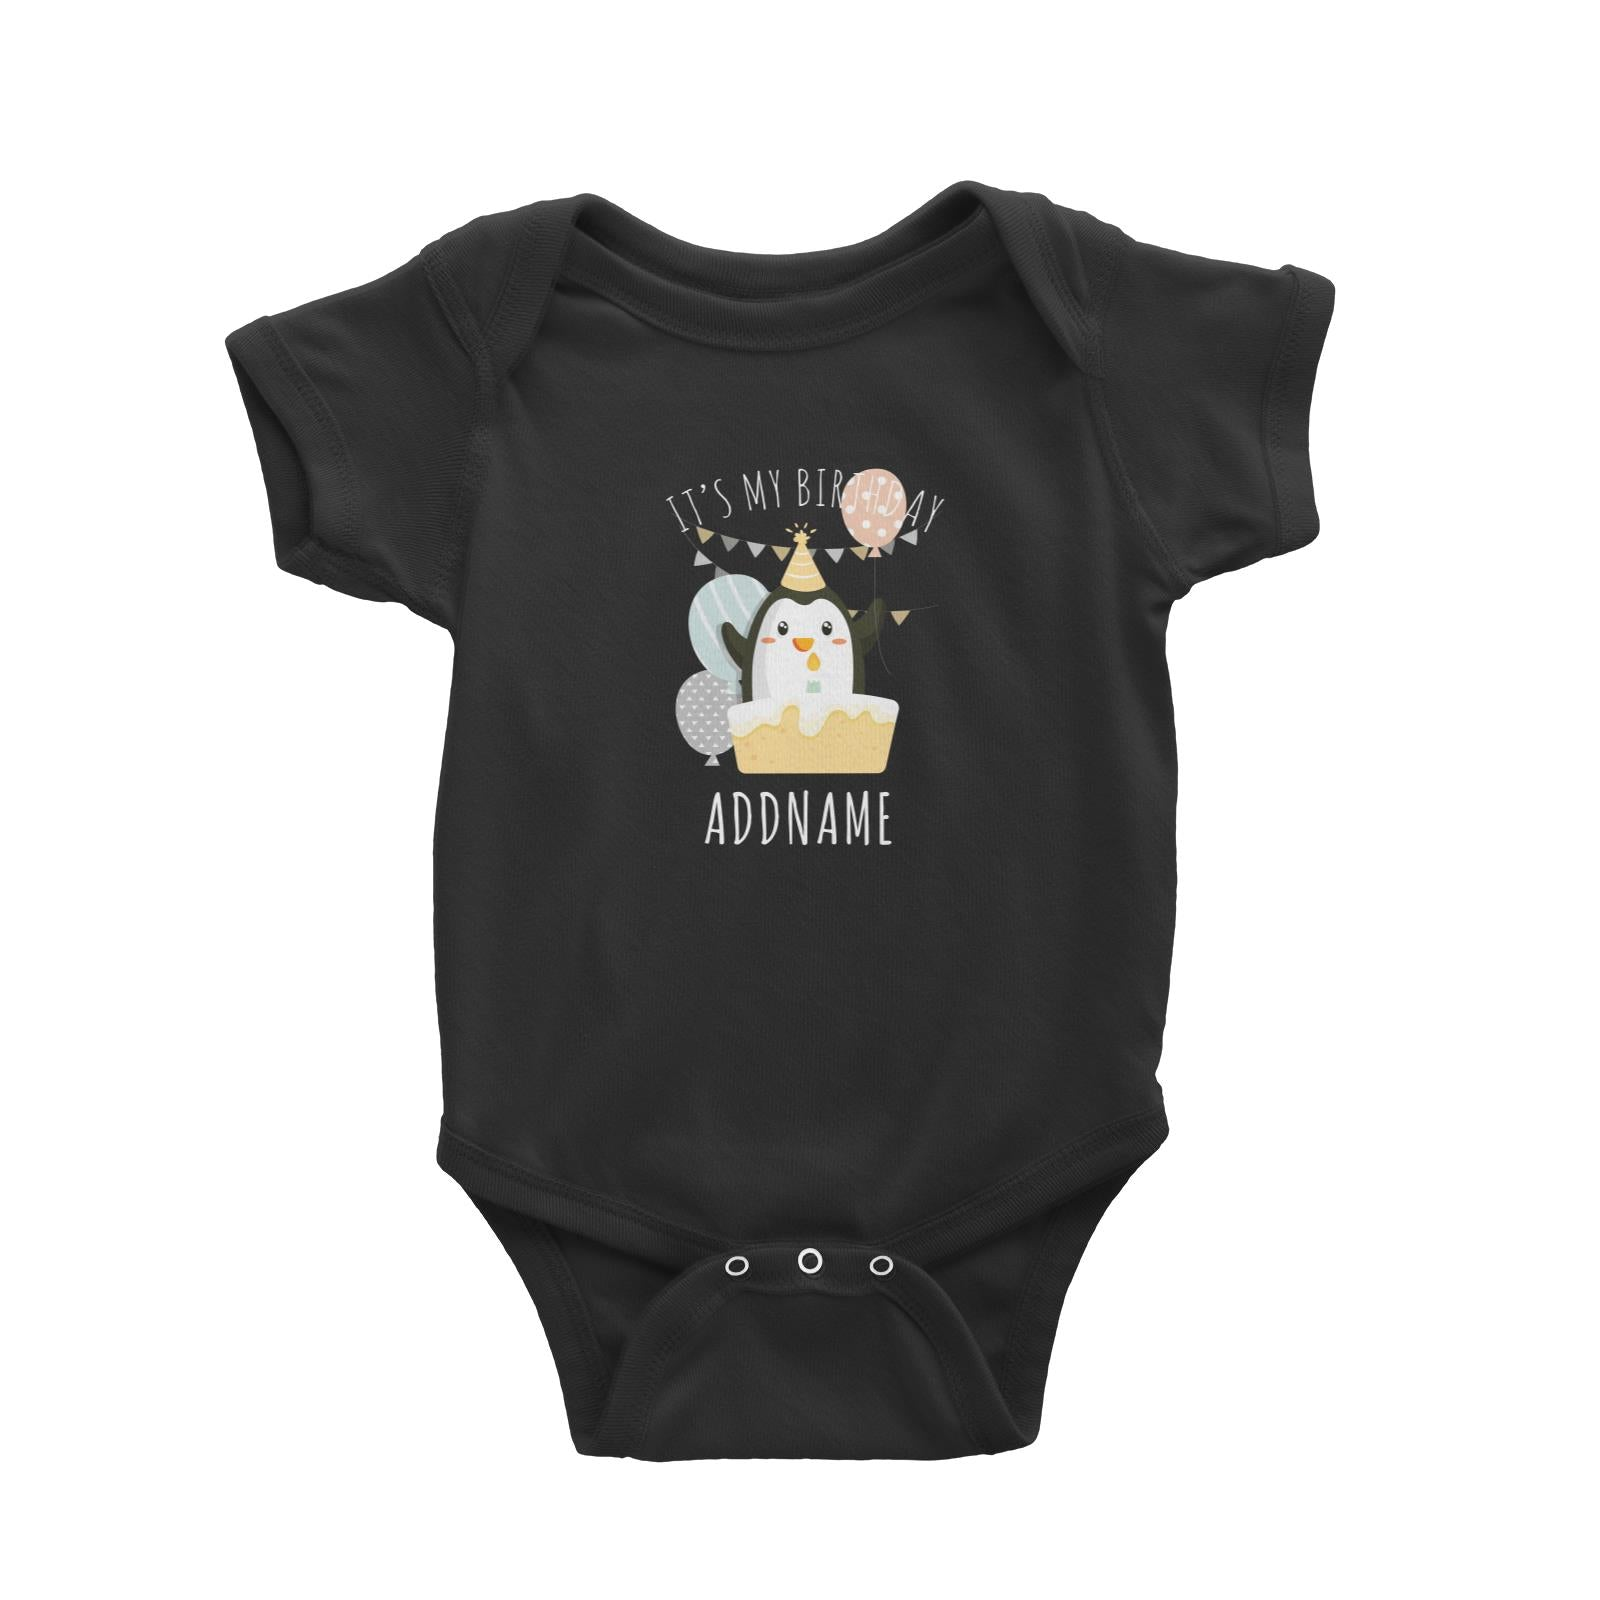 Birthday Cute Penguin And Cake It's My Birthday Addname Baby Romper